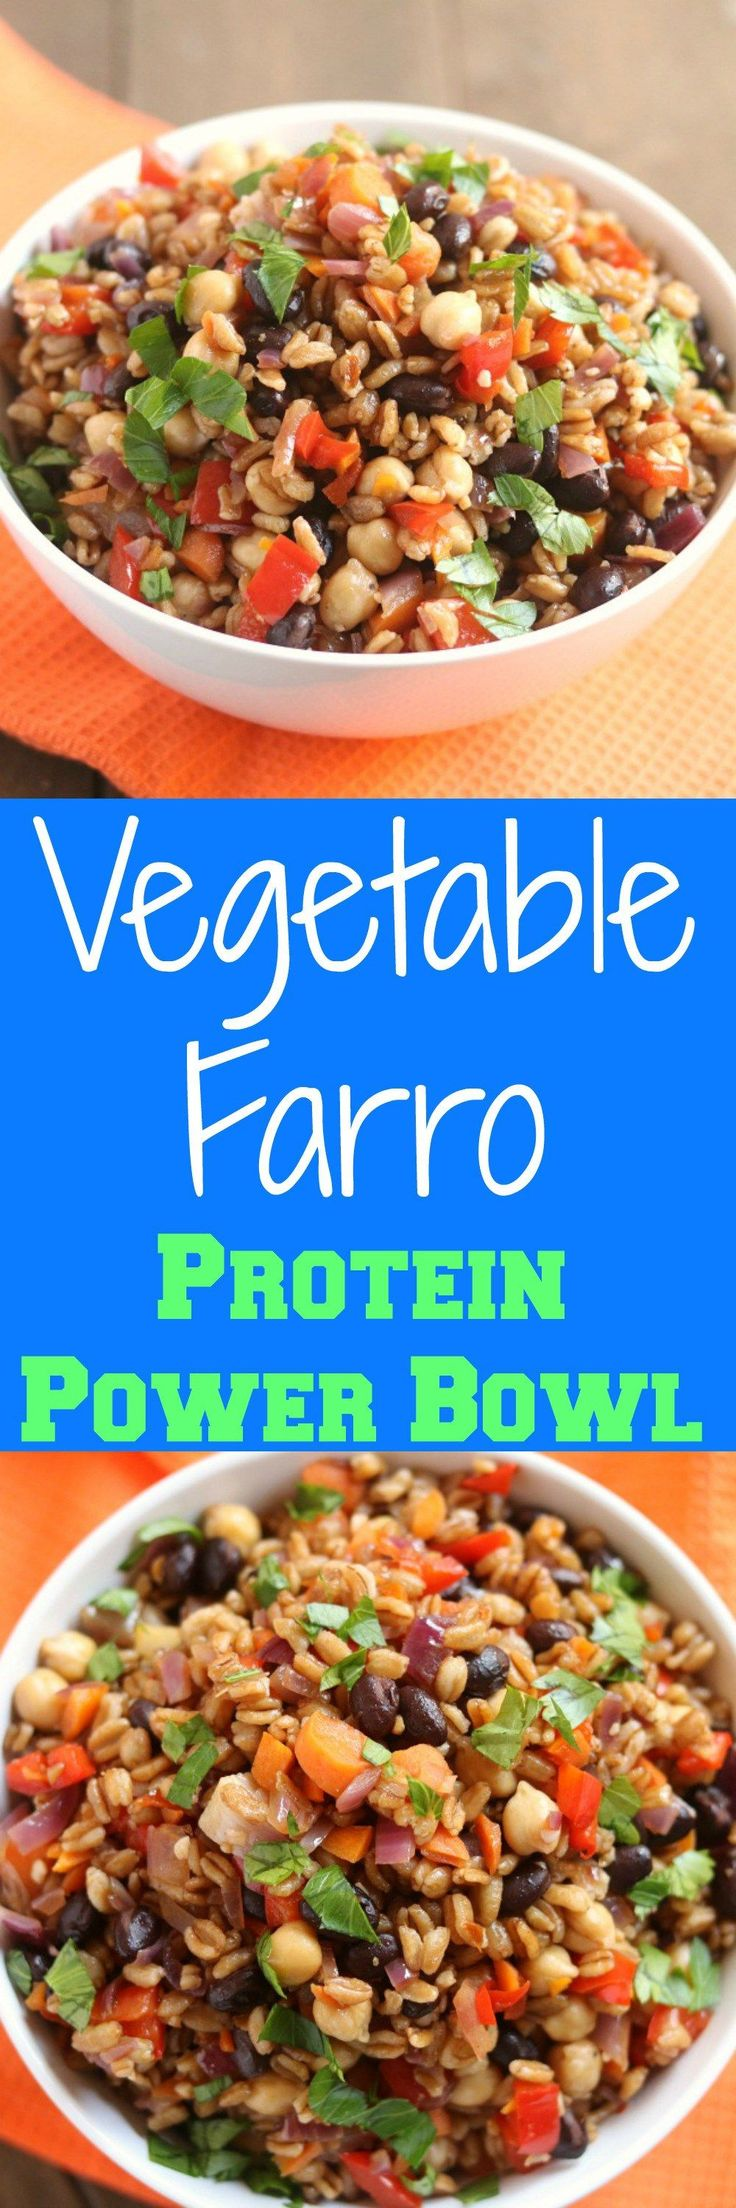 vegetable-farro-protein-power-bowl #thereciperedux